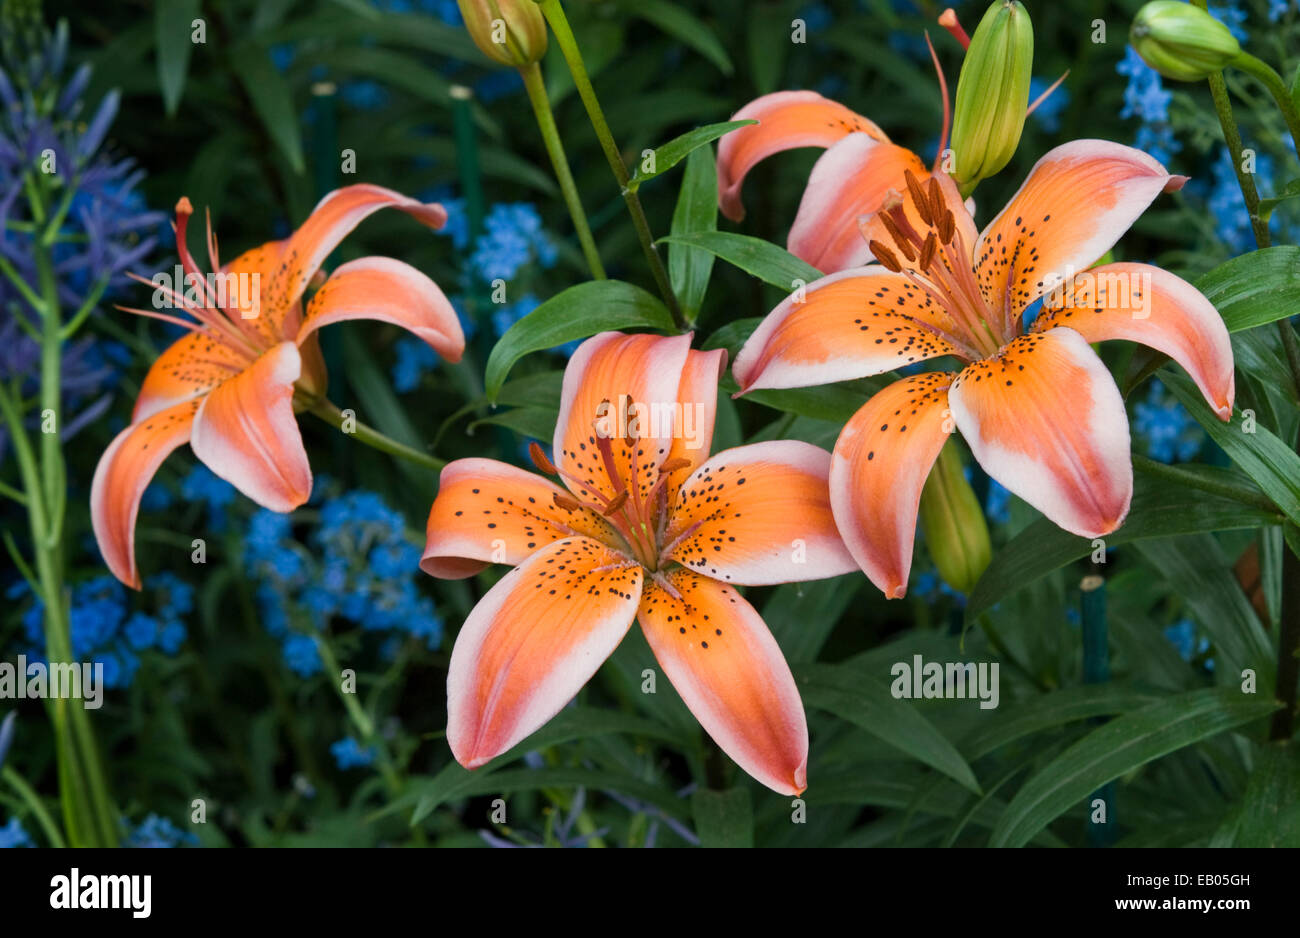 ASIATIC HYBRID LILY - LILIUM 'ELECTRIC' - Stock Image